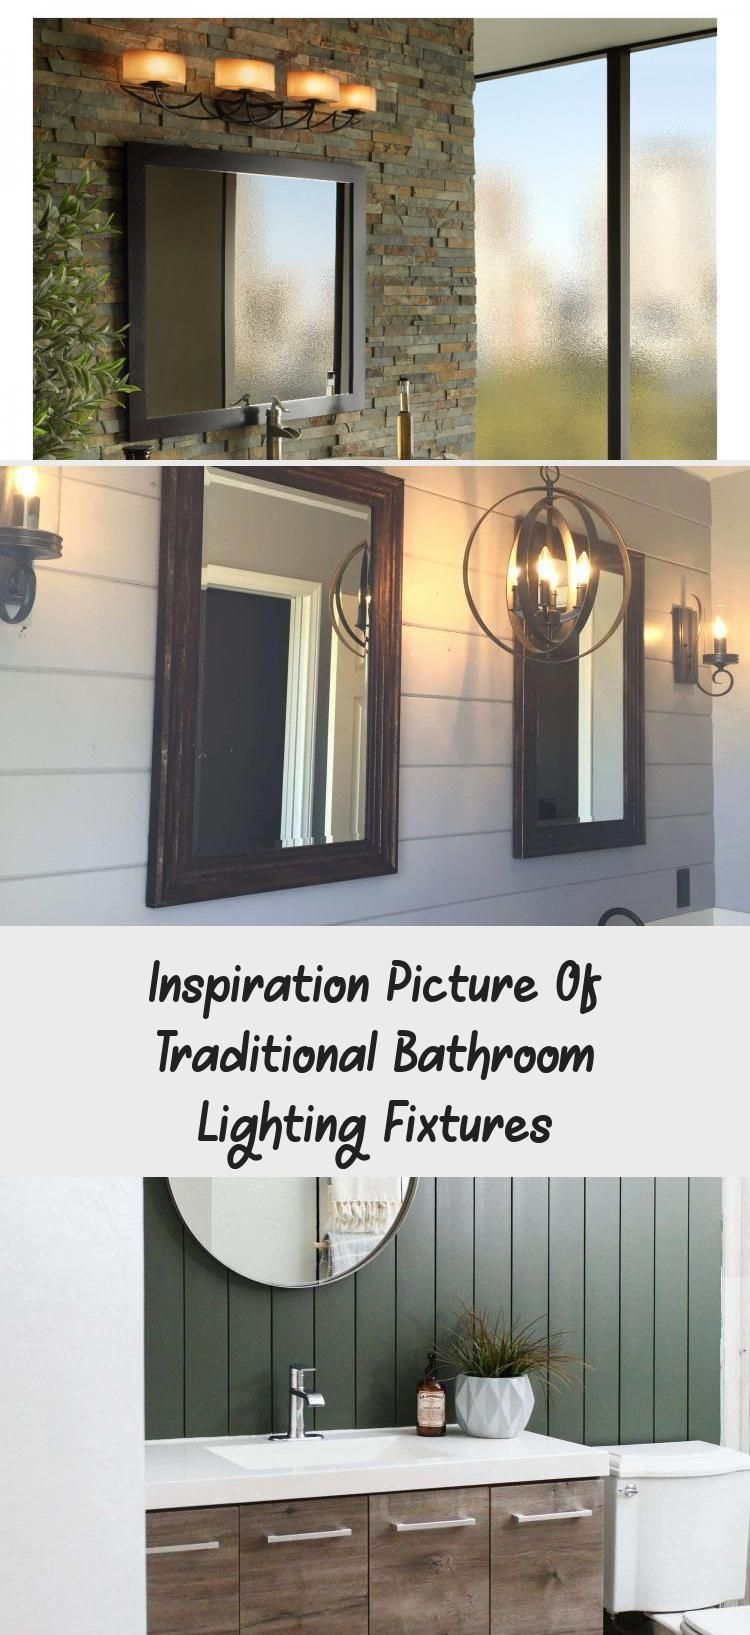 Inspiration Picture Of Traditional Bathroom Lighting Fixtures Bathroom In 2020 Traditional Bathroom Lighting Bathroom Light Fixtures Traditional Bathroom